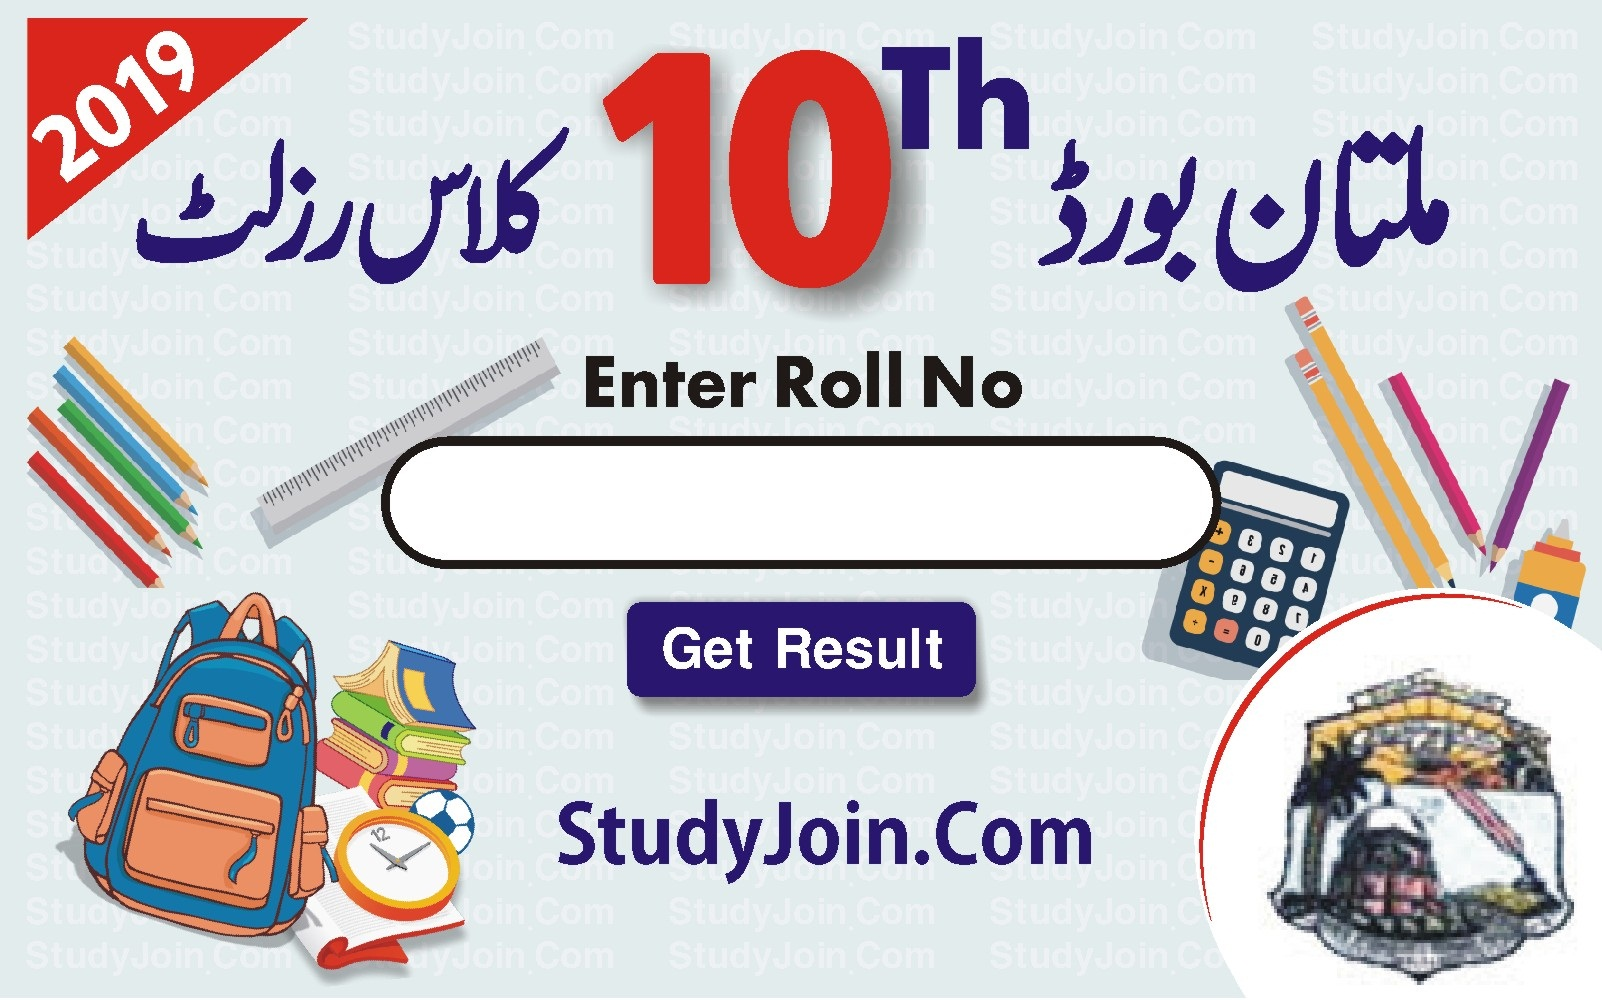 bise multan matric result 2019, bise of 10th class multan result, multan board result 10th class 2019, bise multan matric result 2019, bise multan 10th result 2019, bise multan 10th result 2019, bise multan 10th result 2019 date, bise multan 10th result 2019, bise multan 9th result 2019, 10th class result 2019 multan board, multan board result 10th class 2019, bise of 10th class multan result, 10th class result 2019 multan board date